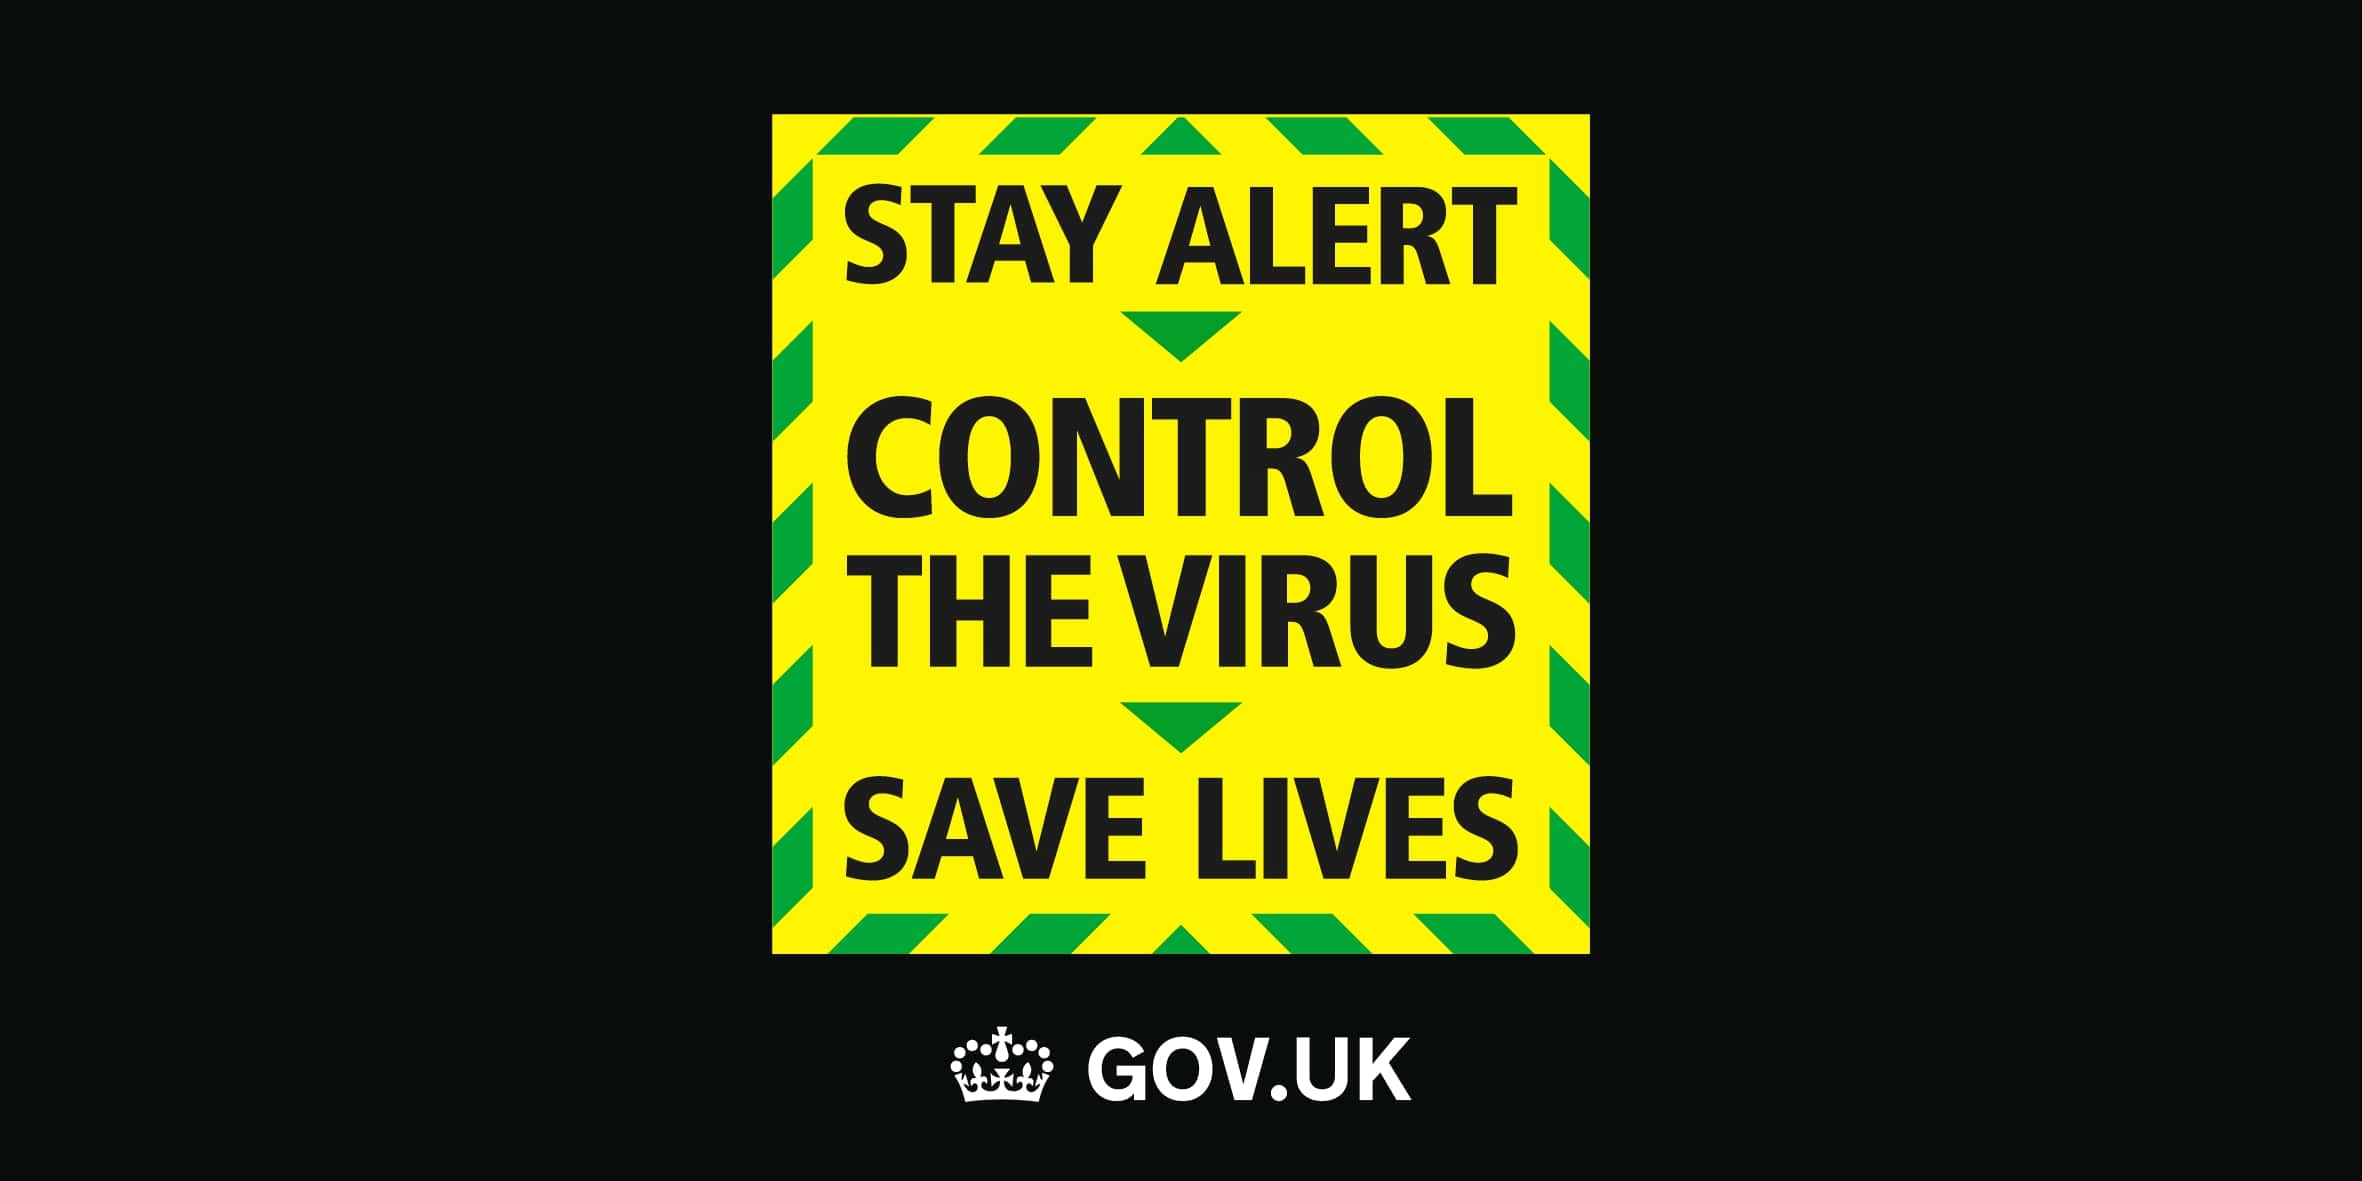 Covid-19 Stay Alert Government Poster